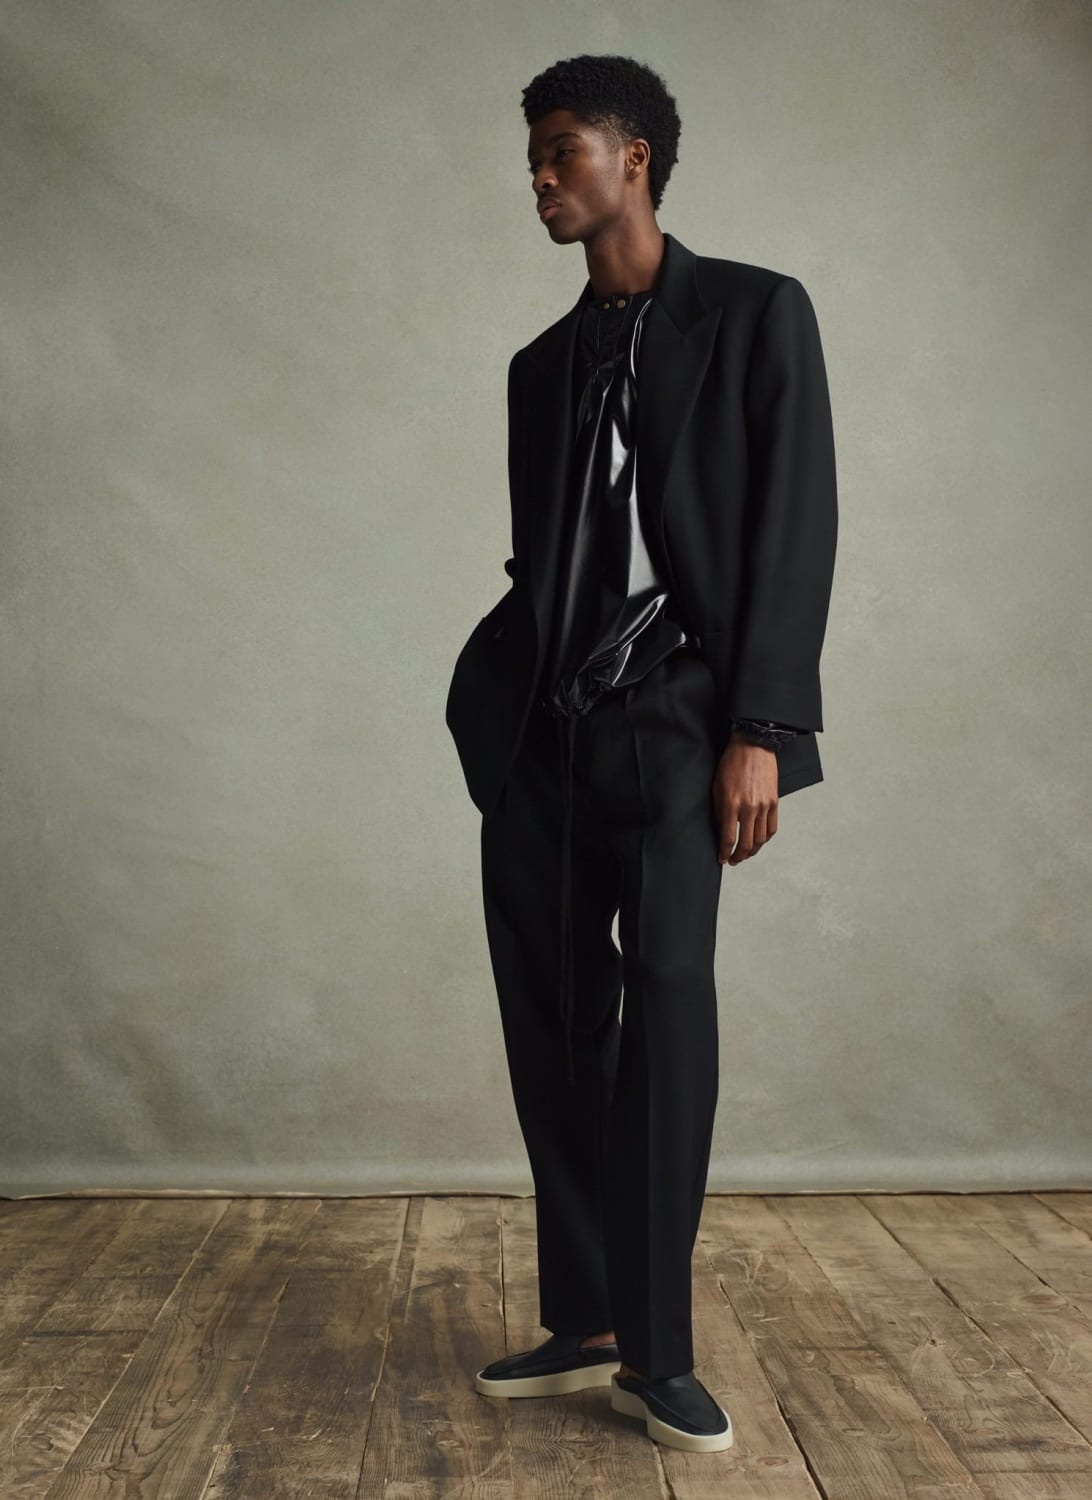 Seventh Collection Lookbook Look 49